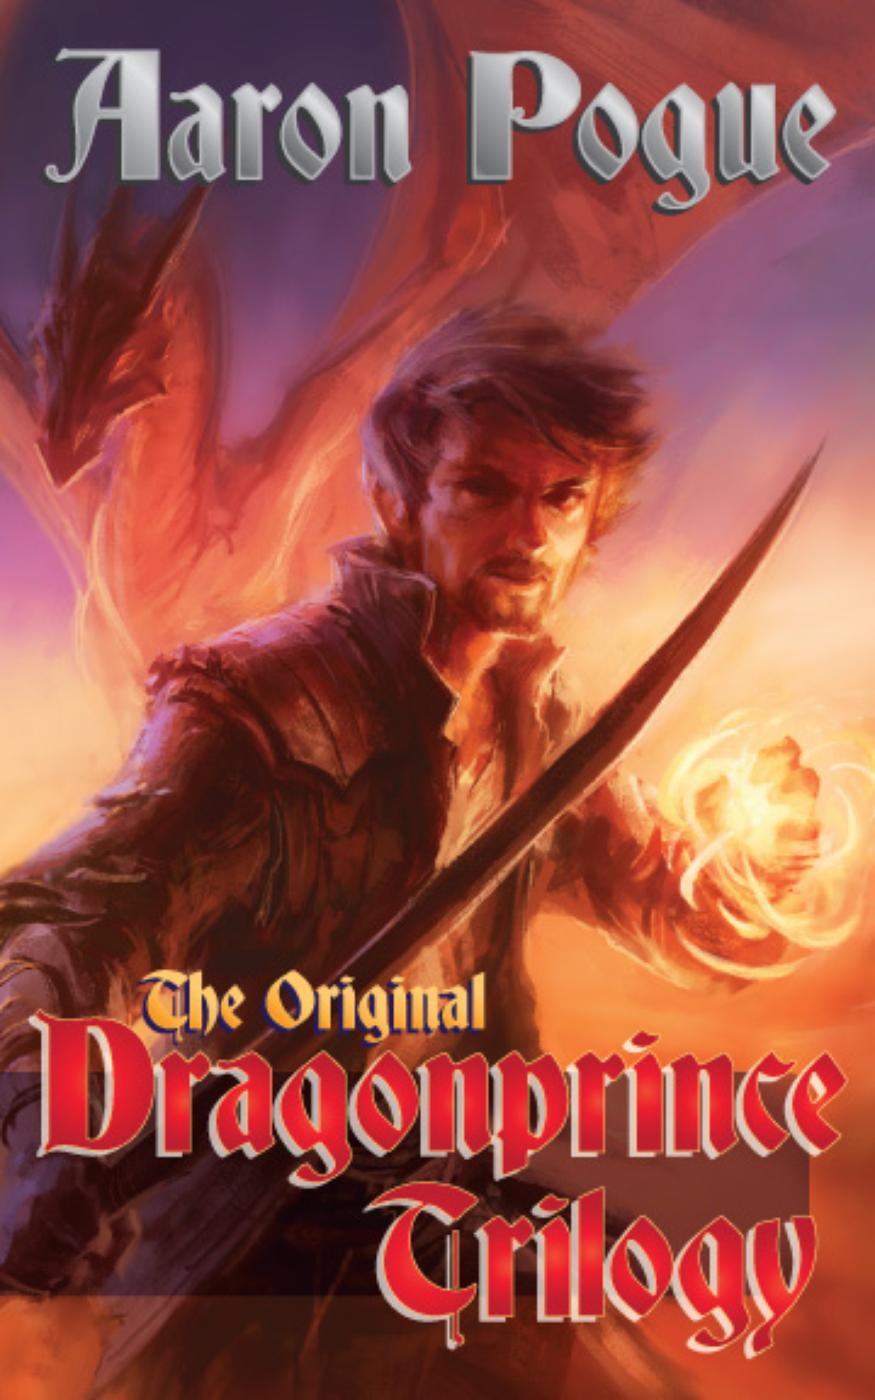 The Original Dragonprince Trilogy